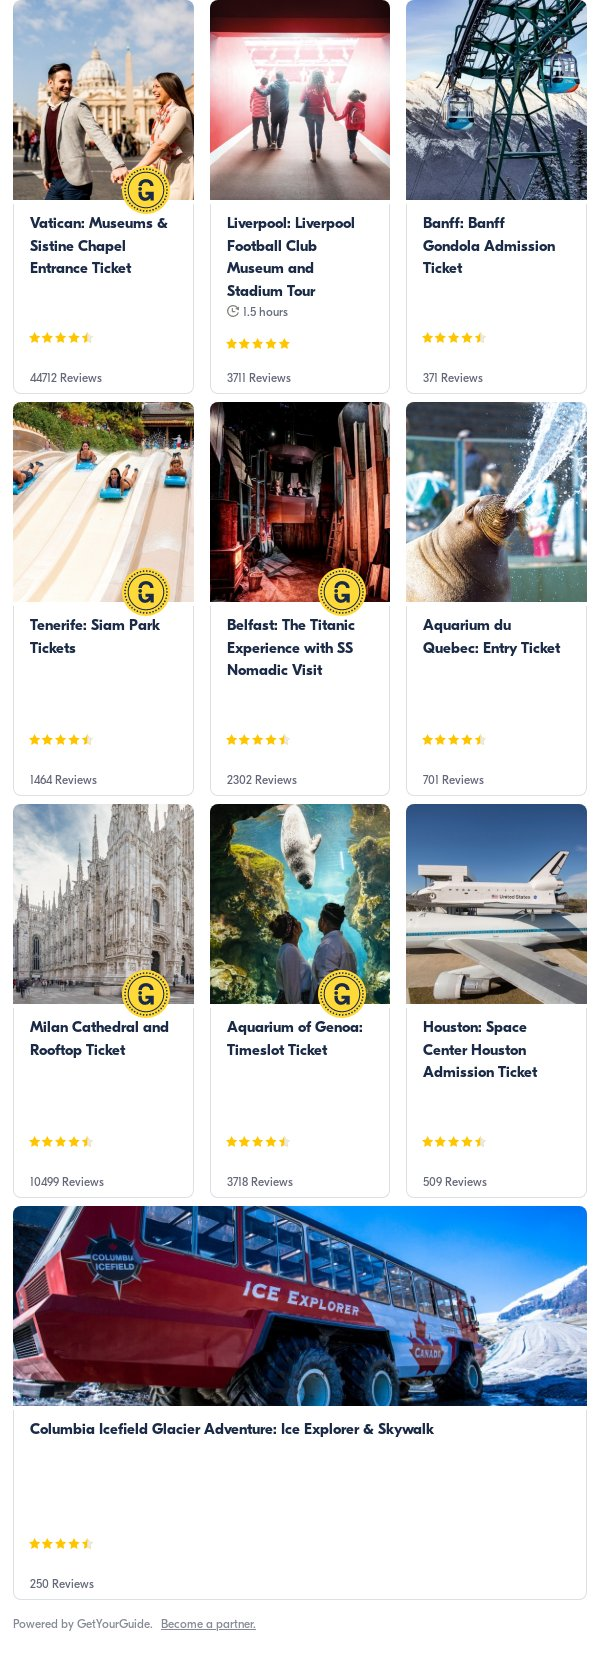 barcelona: Get Your Guide